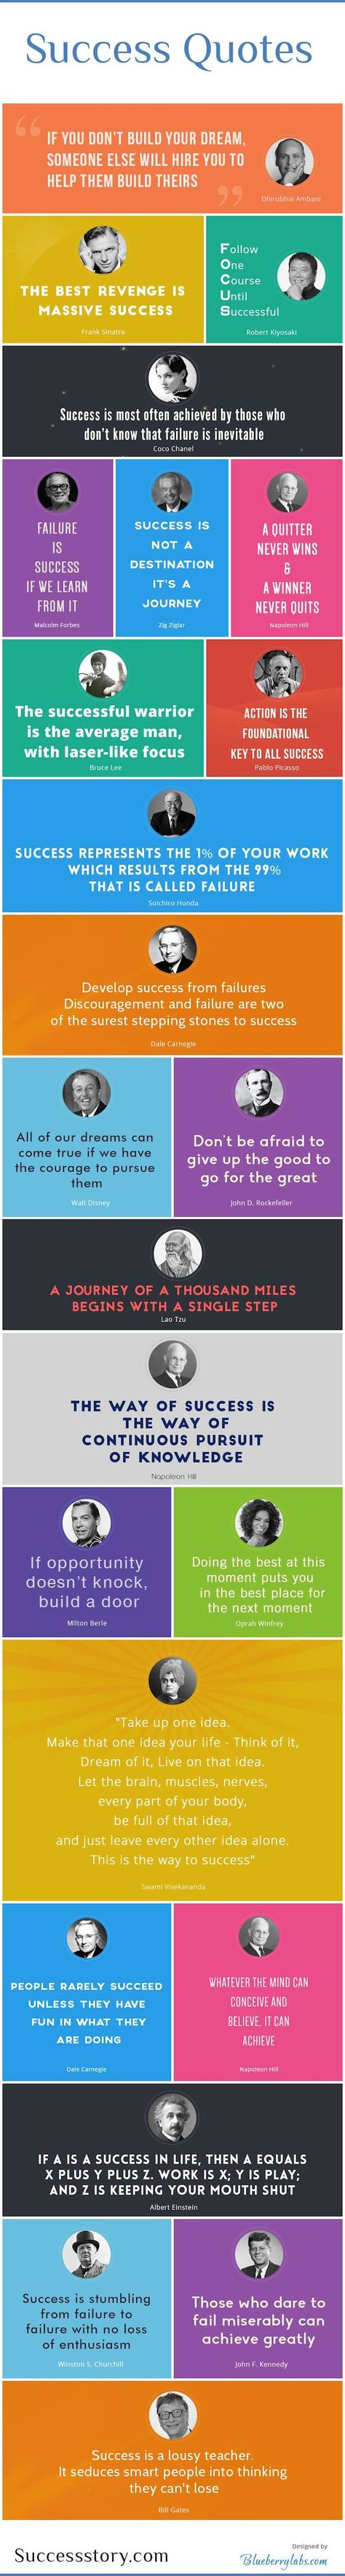 What an awesome idea—a quote nfographic with quotes. Love it. I'm gonna try this! http://blog.hubspot.com/sales/motivational-quotes-on-success-from-some-of-the-worlds-most-successful-people-infographic?utm_content=buffer24ffc&utm_medium=social&utm_source=pinterest.com&utm_campaign=buffer